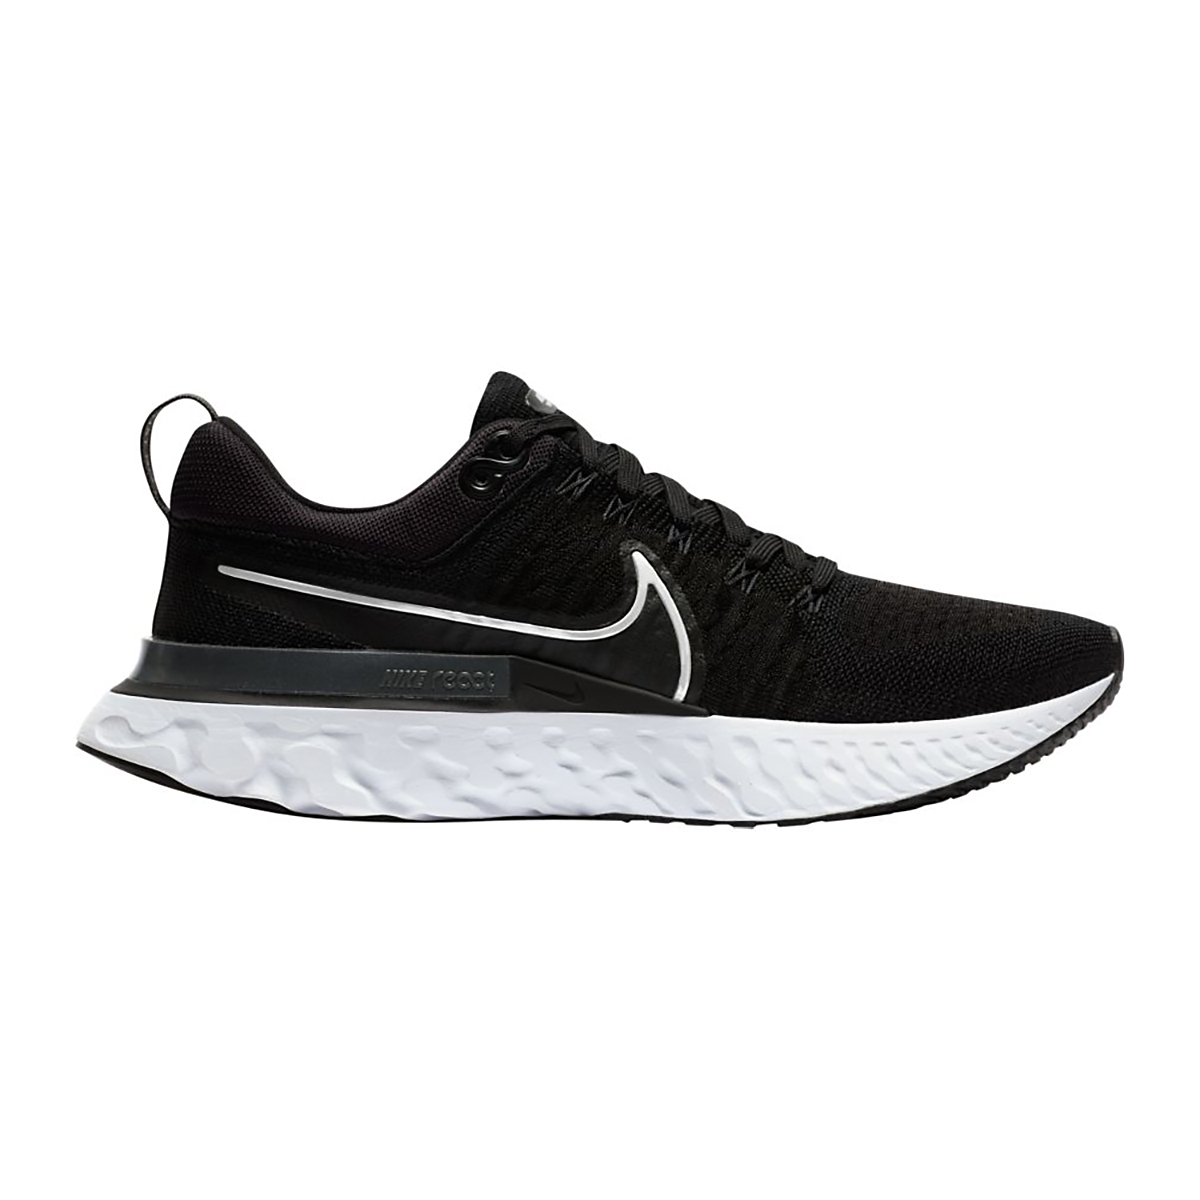 Men's Nike React Infinity Run Flyknit 2 Running Shoe - Color: Black/White/Iron Grey - Size: 6 - Width: Regular, Black/White/Iron Grey, large, image 1